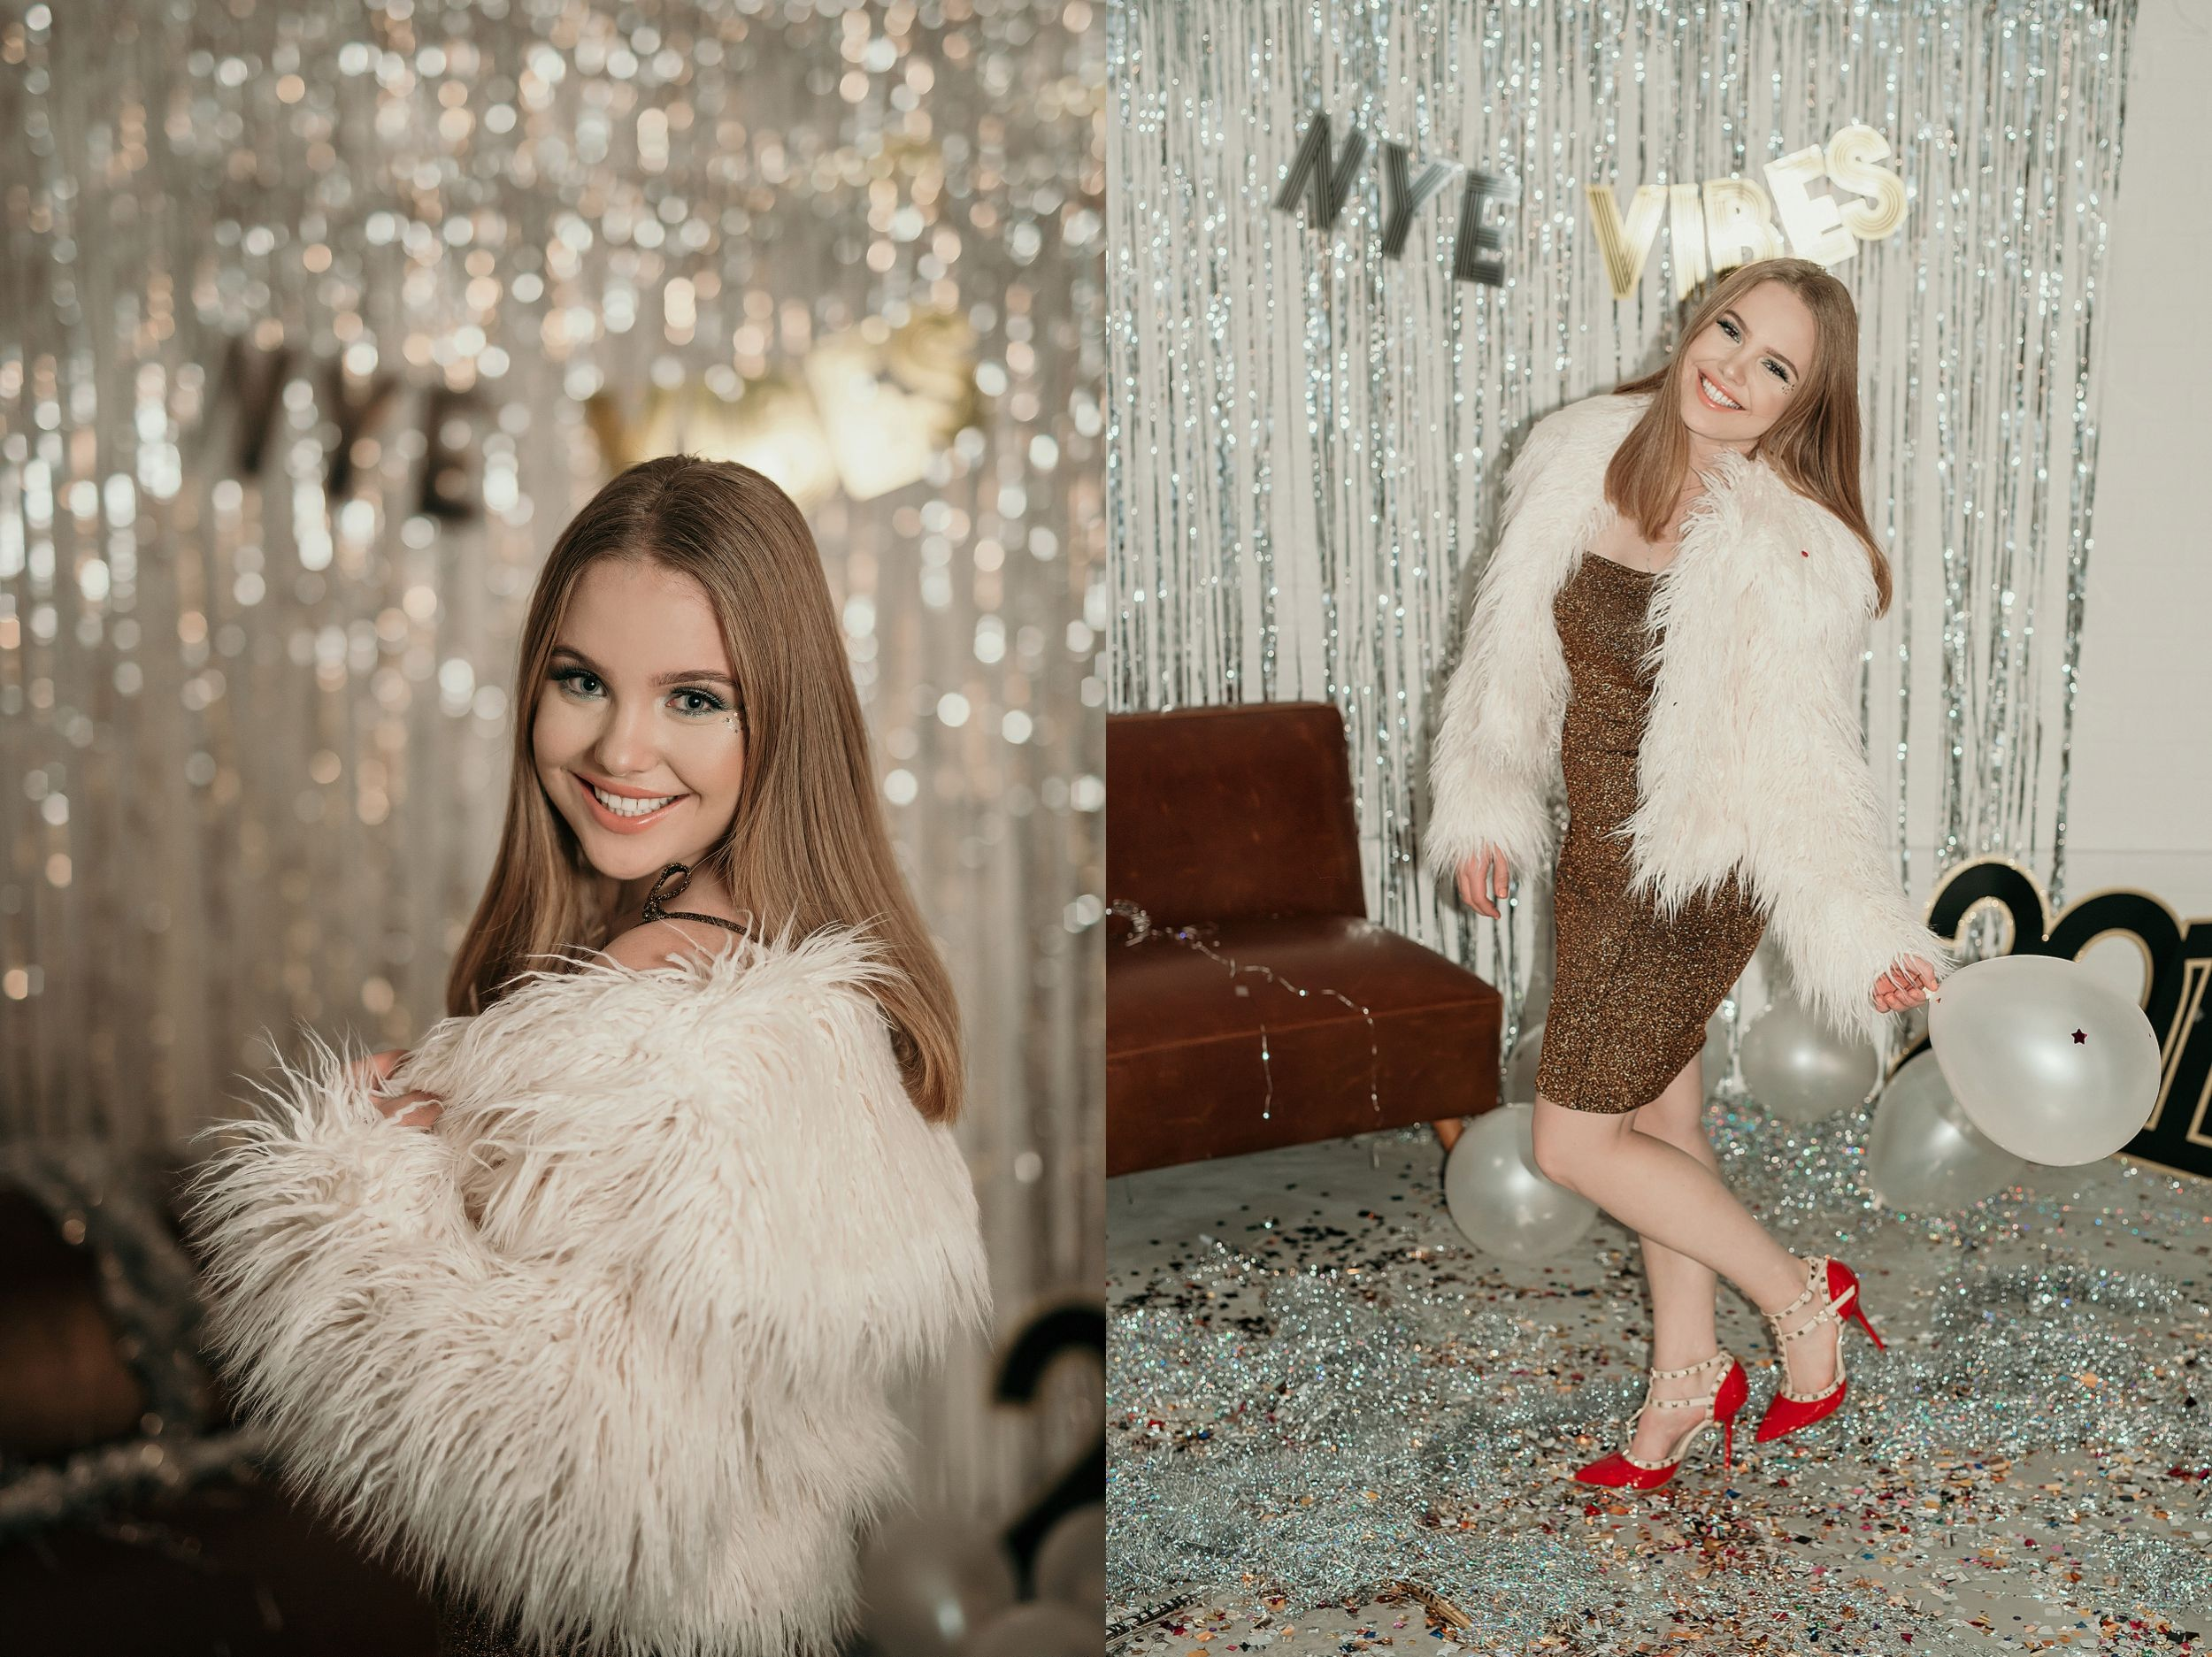 New Years Eve makeup, outfit & party decor ideas | Brianna ...